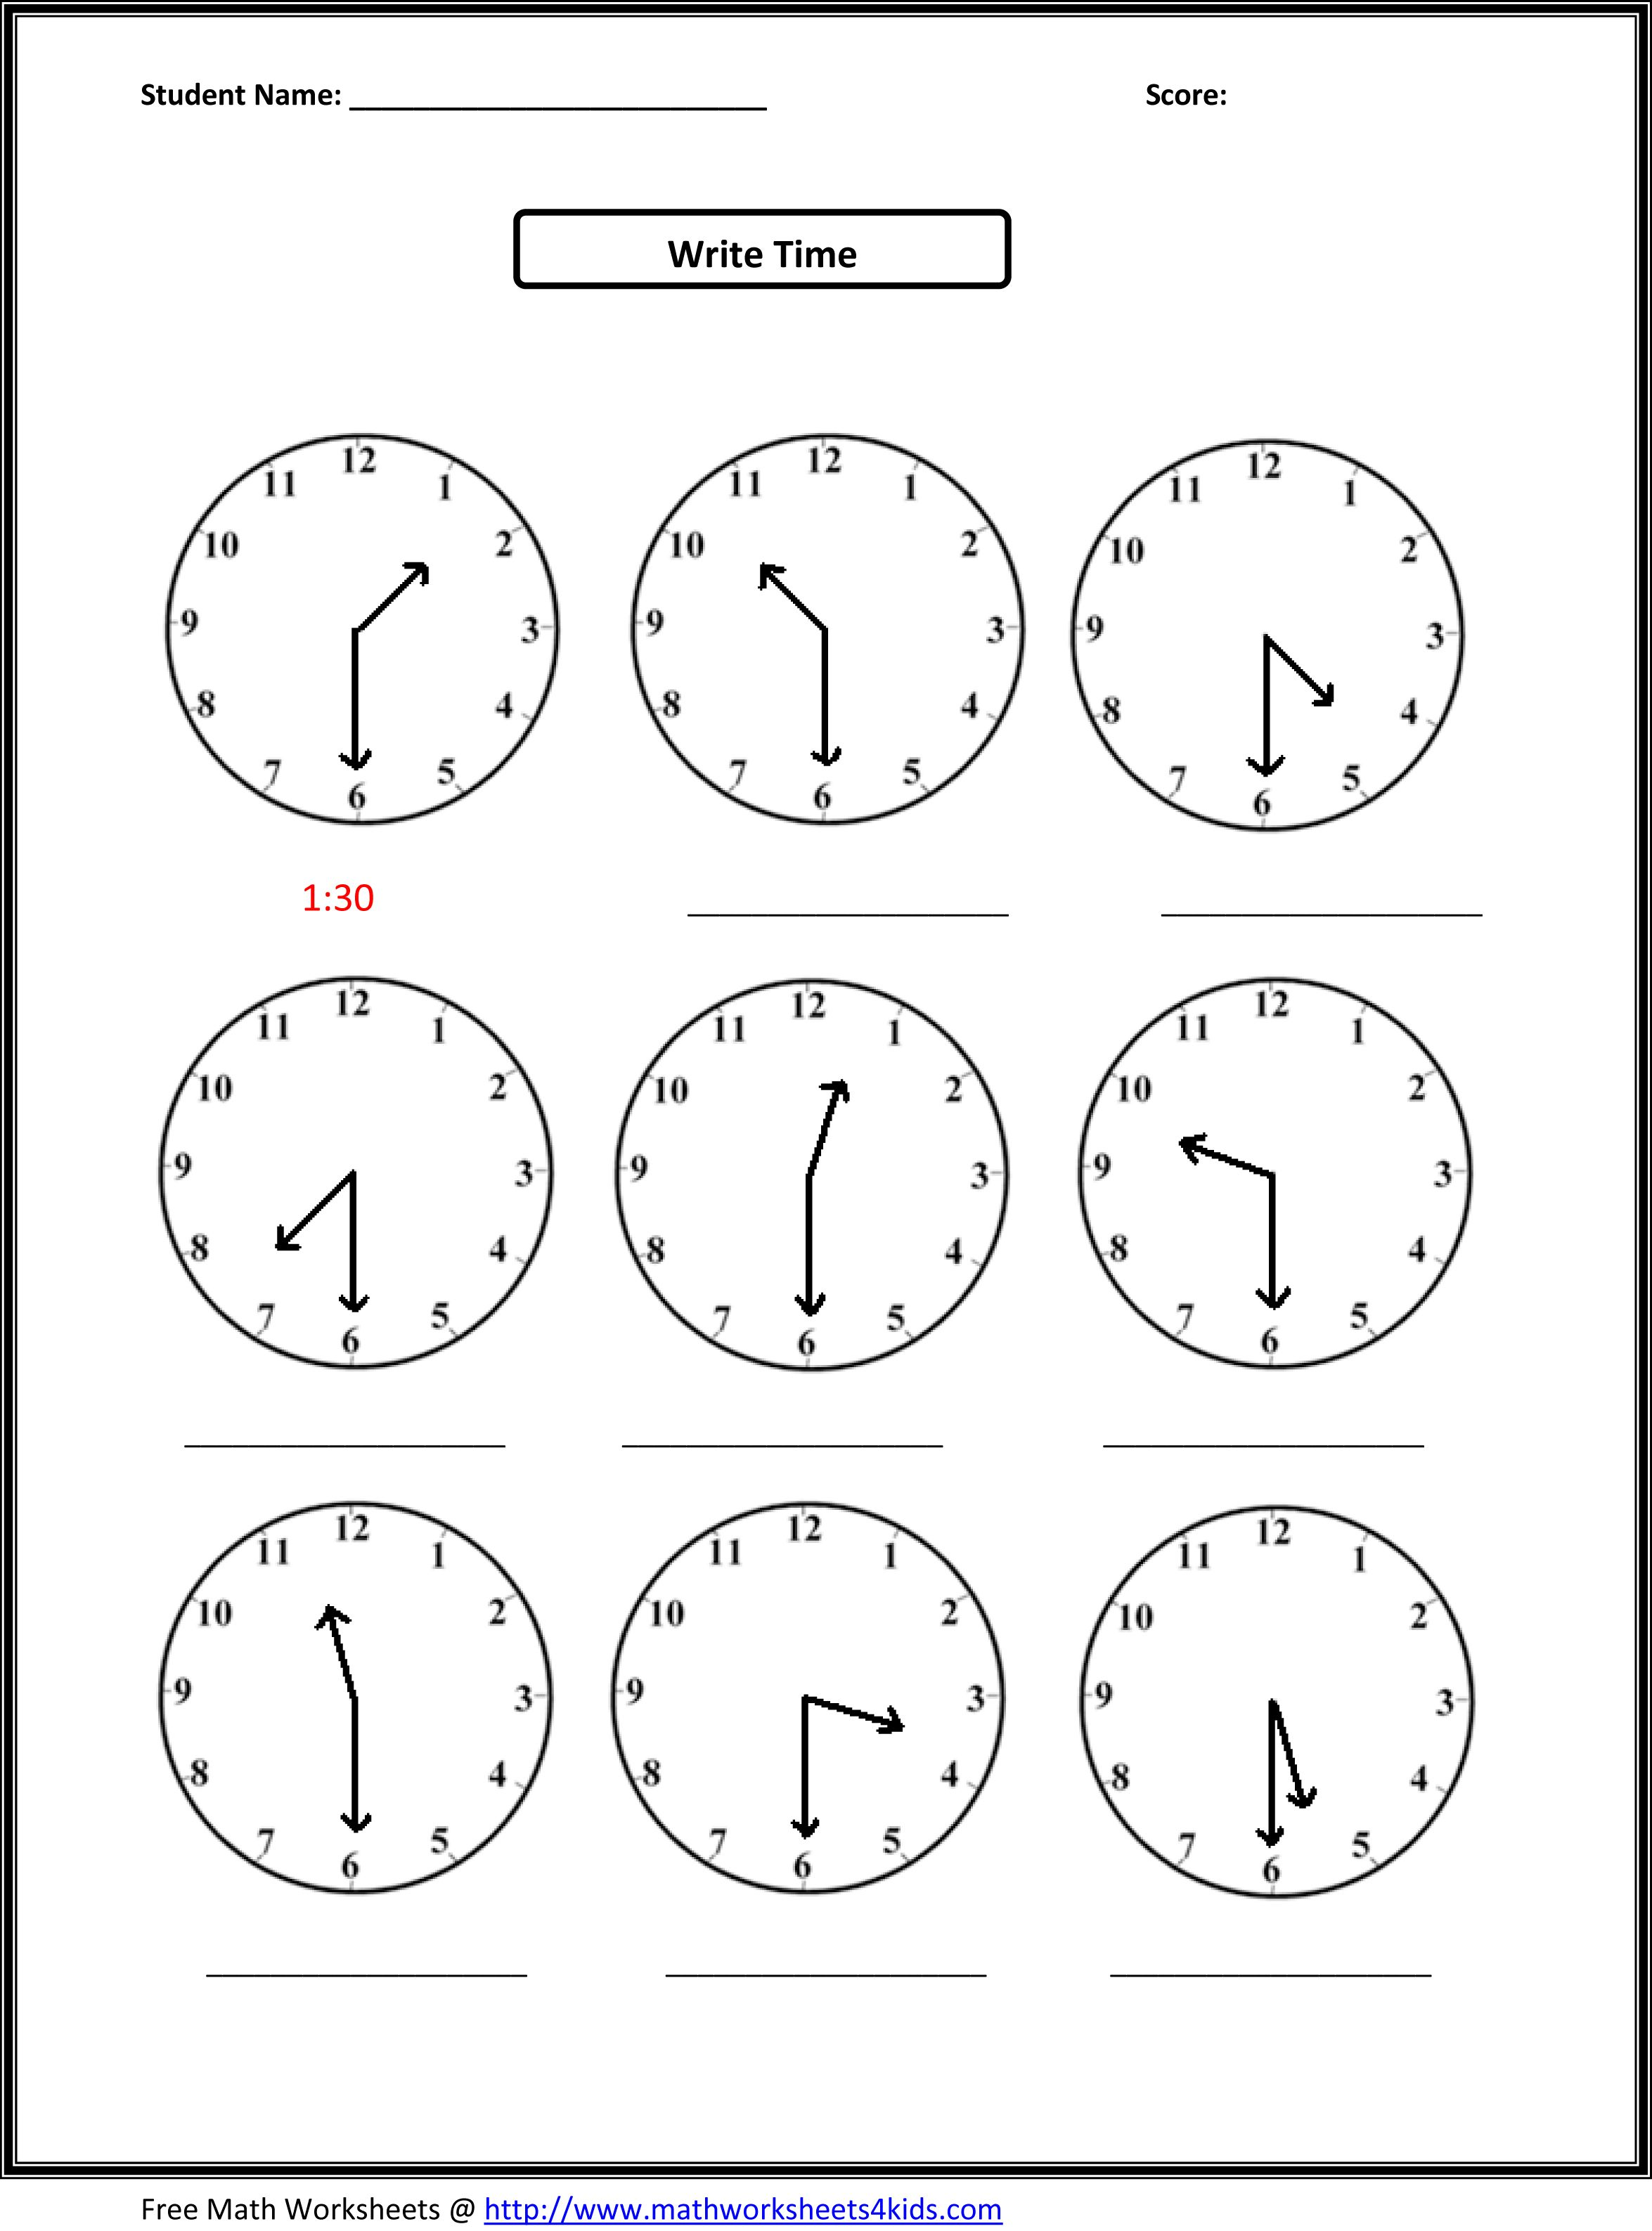 Proatmealus  Marvellous Worksheet On Time For Grade   Reocurent With Exquisite Free Printable Telling Time Worksheets Nd Grade  Reocurent With Nice Free Math Worksheets For Kindergarten Addition Also Holocaust Vocabulary Worksheet In Addition Subtraction Without Regrouping Worksheets Nd Grade And Vowel Sounds Worksheet As Well As Scientific Notation Practice Worksheets Additionally Spatial Concepts Worksheet From Reocurentcom With Proatmealus  Exquisite Worksheet On Time For Grade   Reocurent With Nice Free Printable Telling Time Worksheets Nd Grade  Reocurent And Marvellous Free Math Worksheets For Kindergarten Addition Also Holocaust Vocabulary Worksheet In Addition Subtraction Without Regrouping Worksheets Nd Grade From Reocurentcom